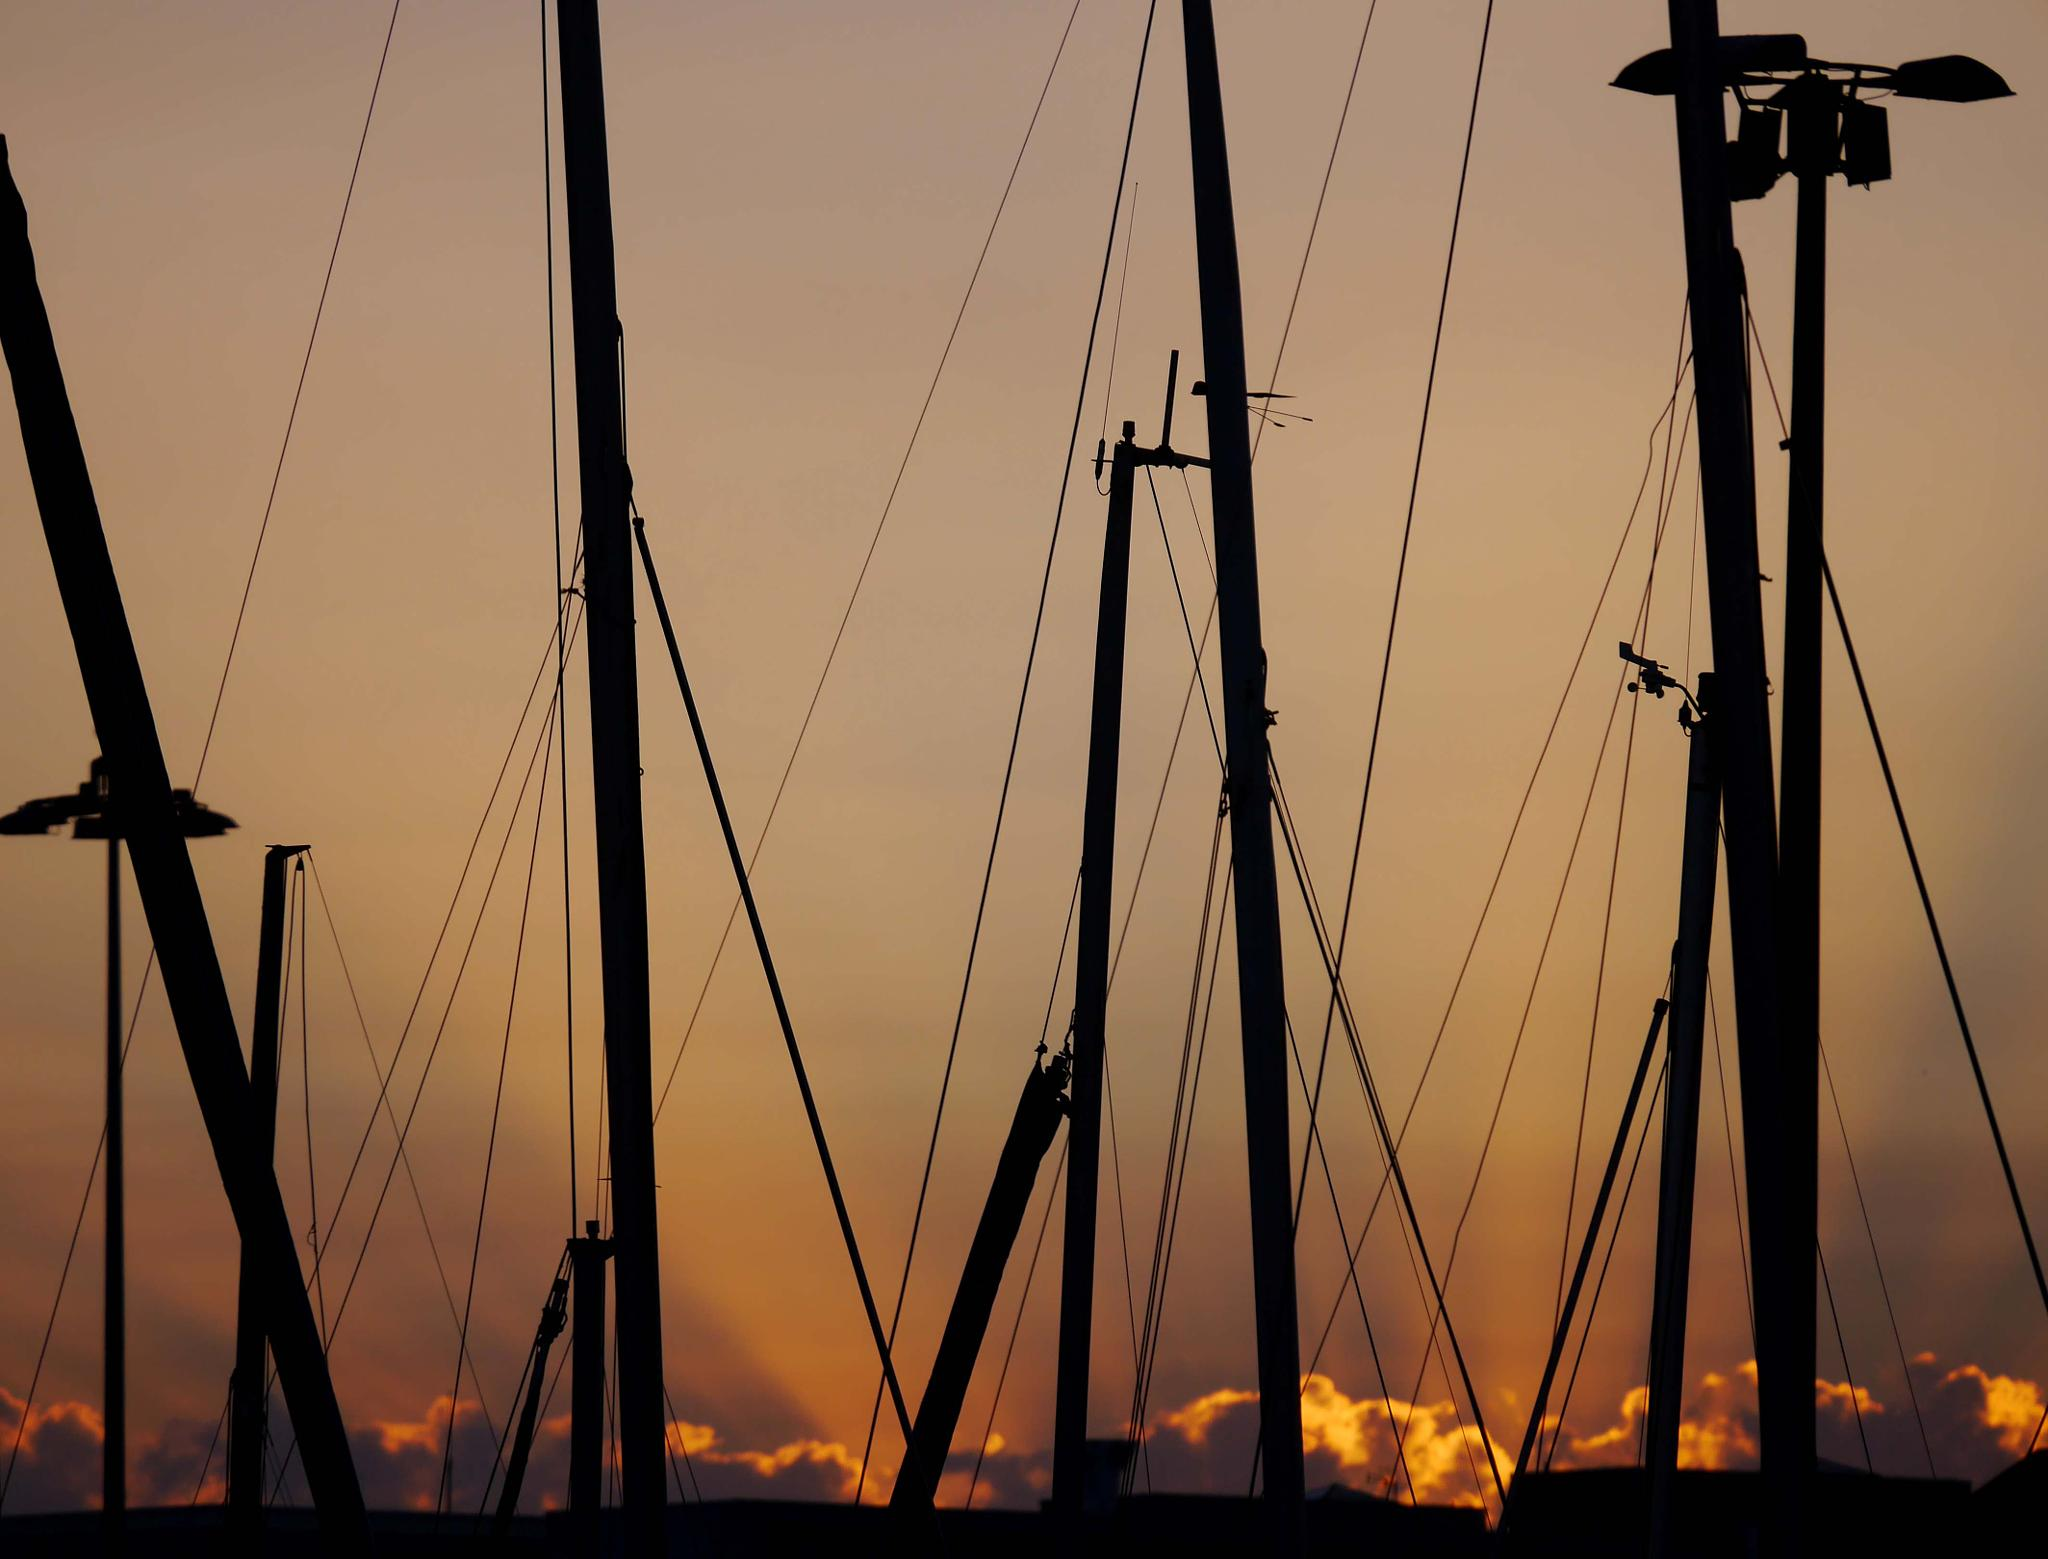 The last rays of sun on the marina by Photosniper